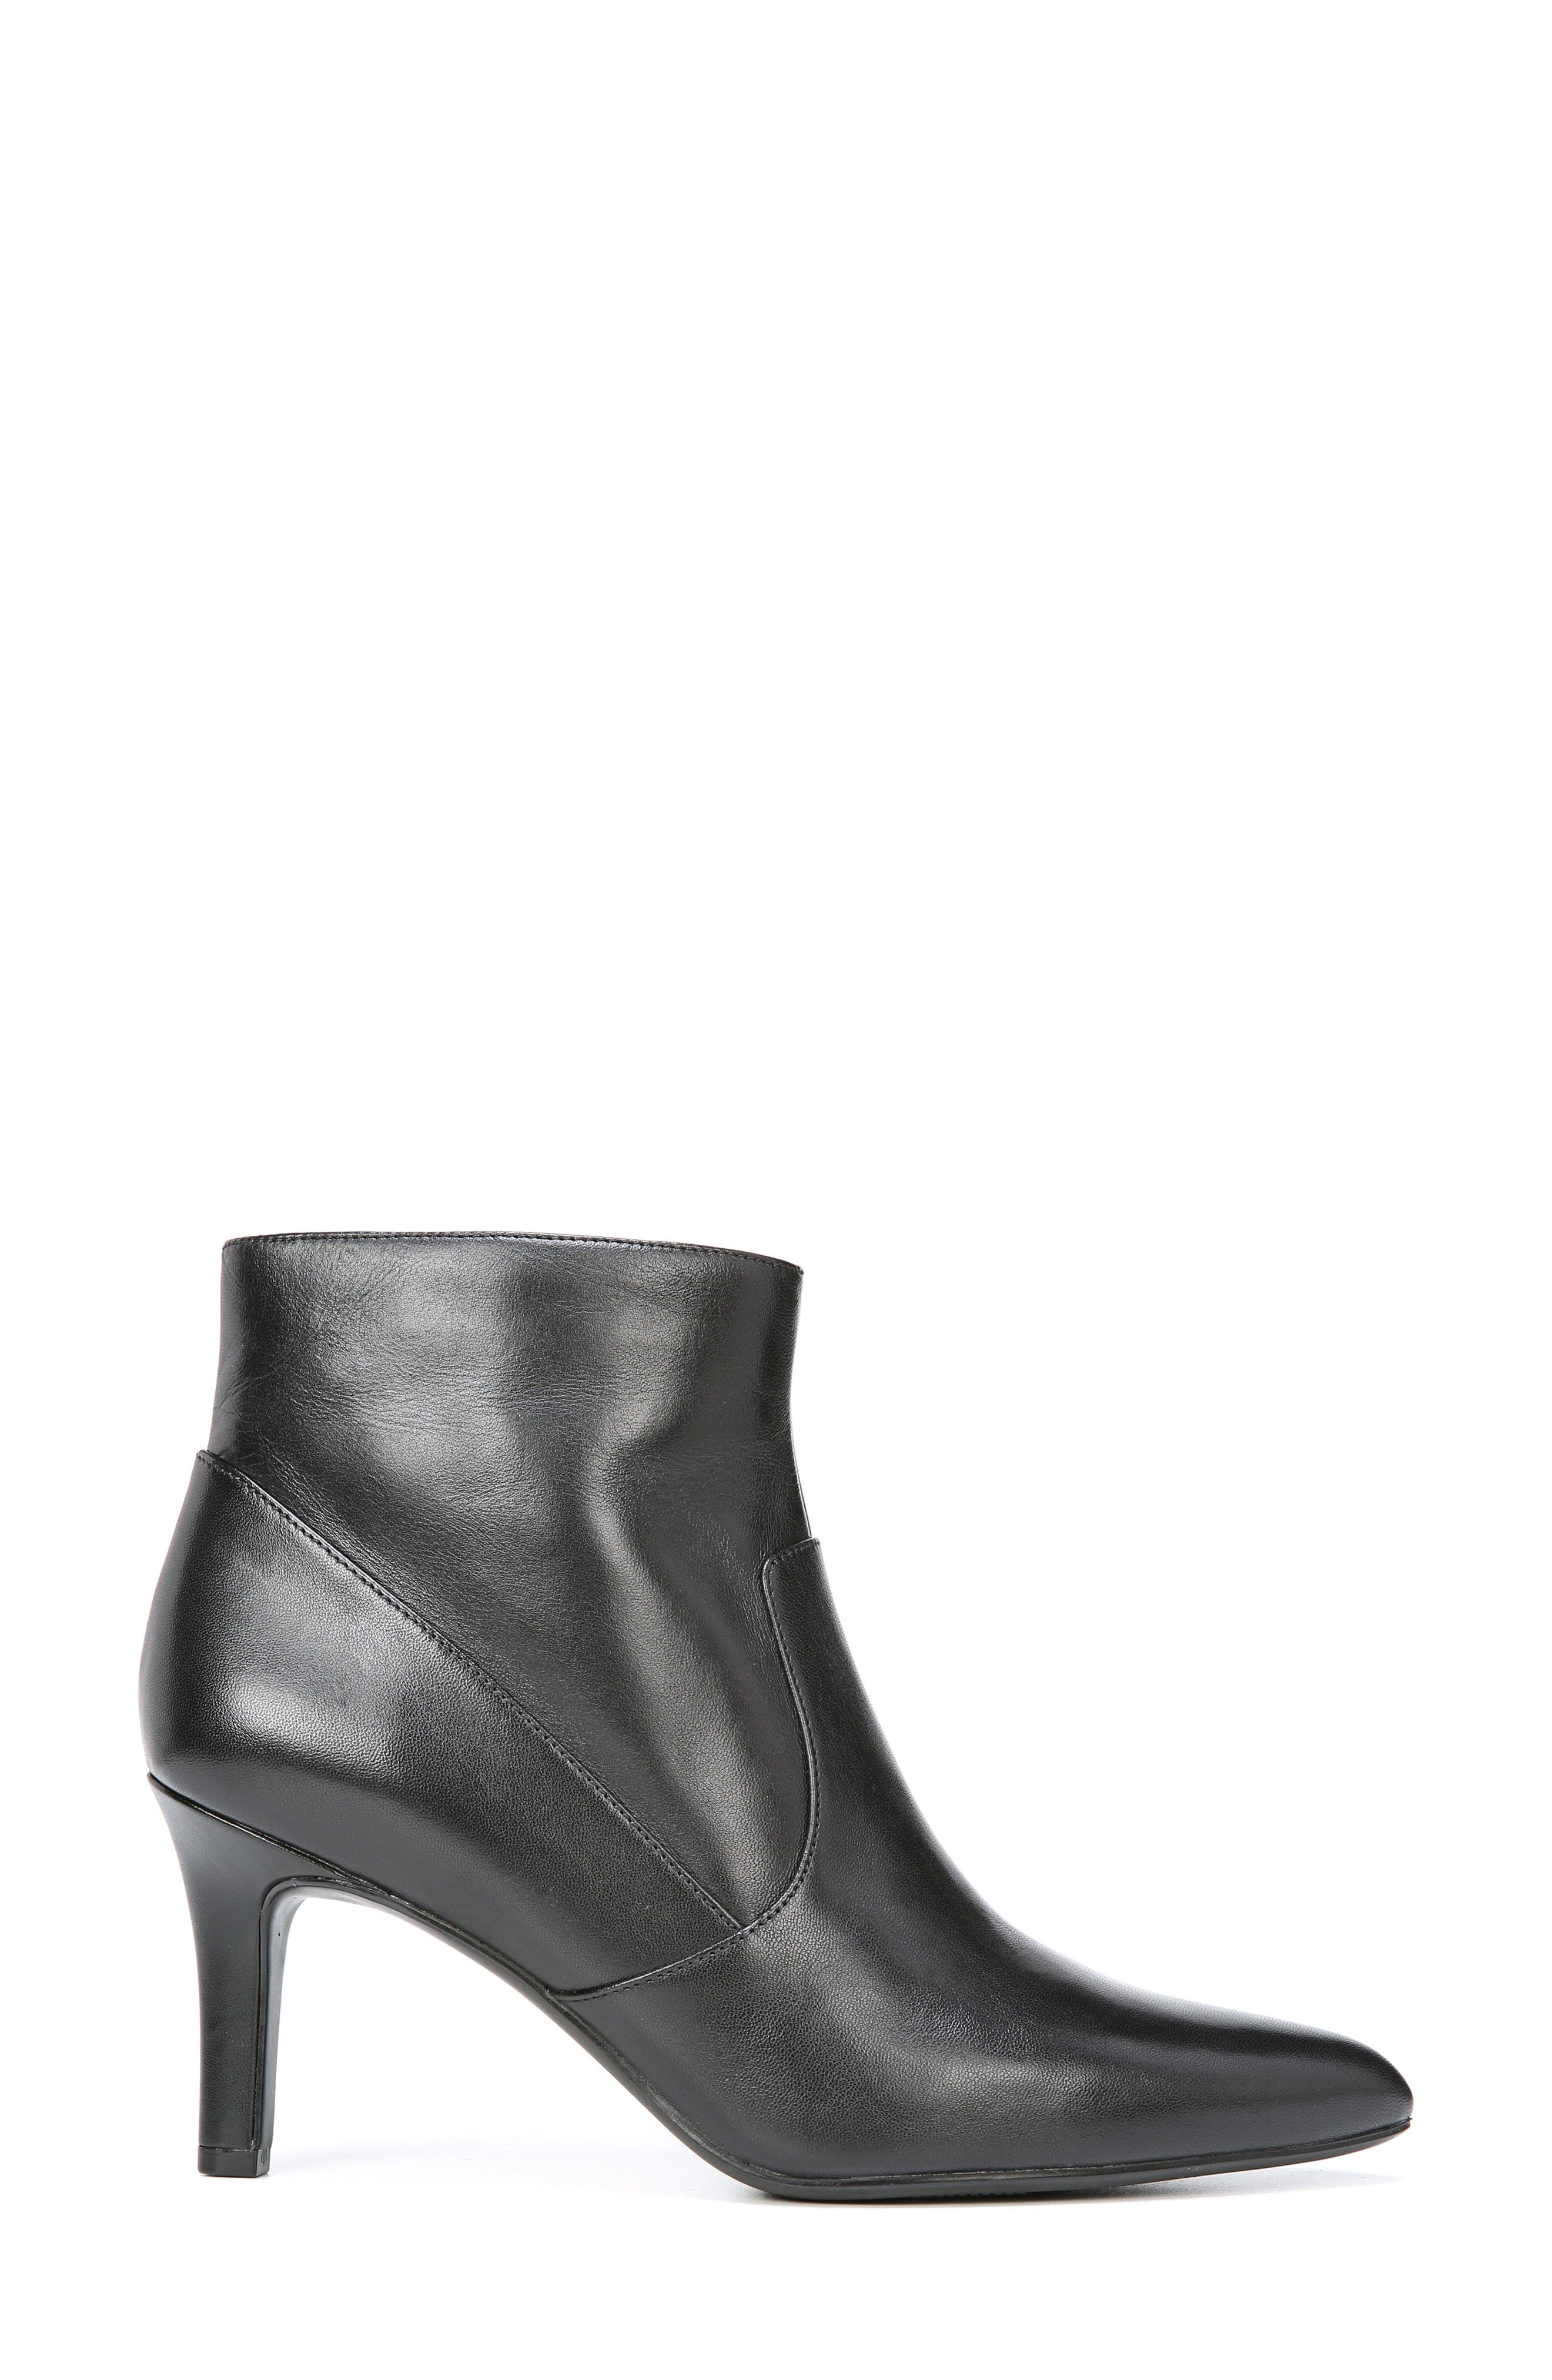 Nadine Bootie,                             Alternate thumbnail 3, color,                             Black Leather